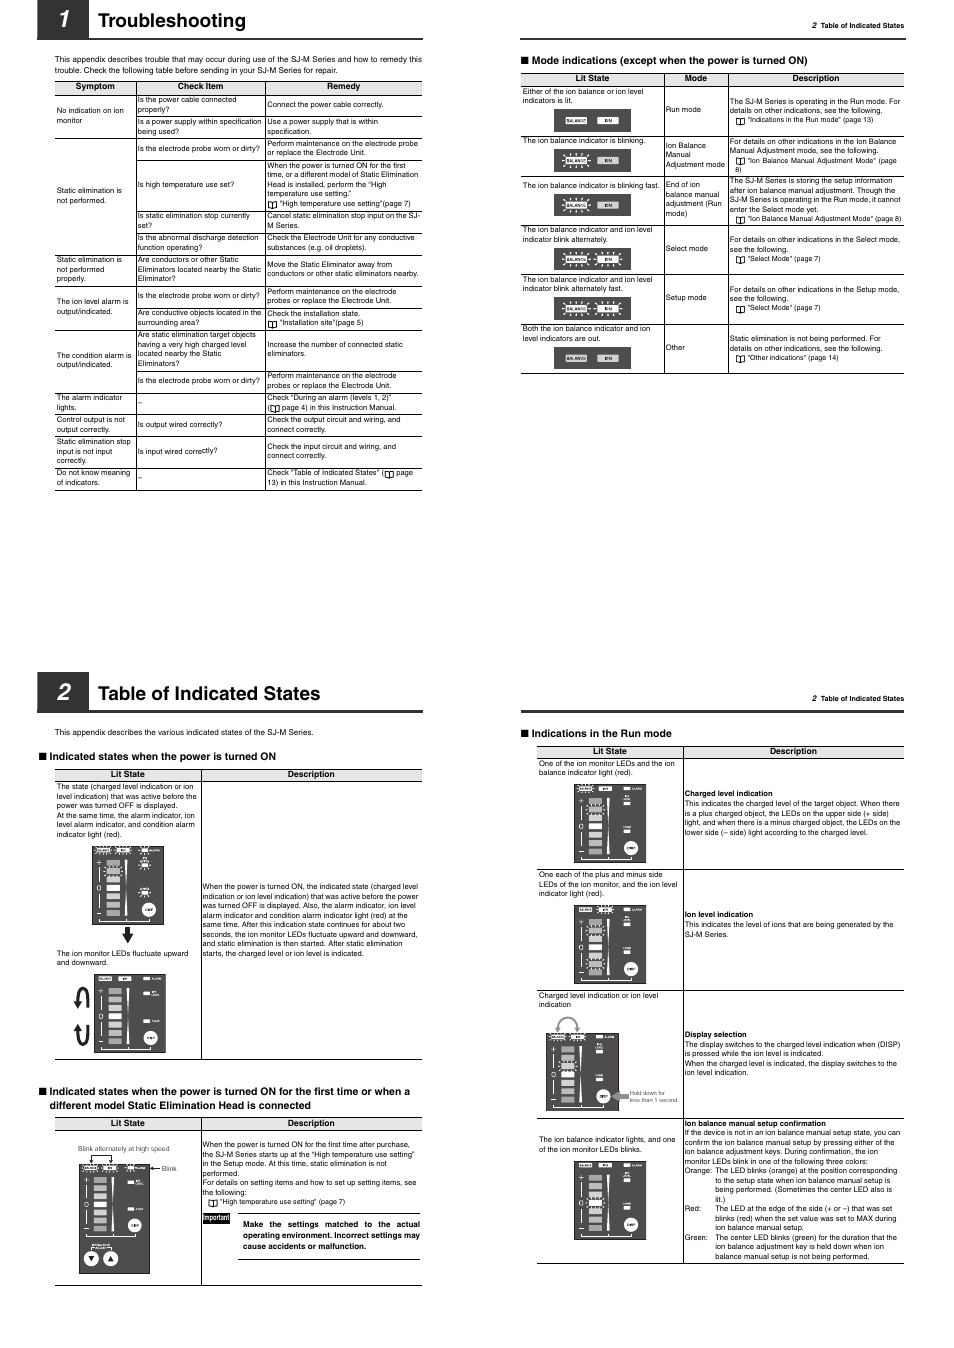 1 troubleshooting, 2 table of indicated states